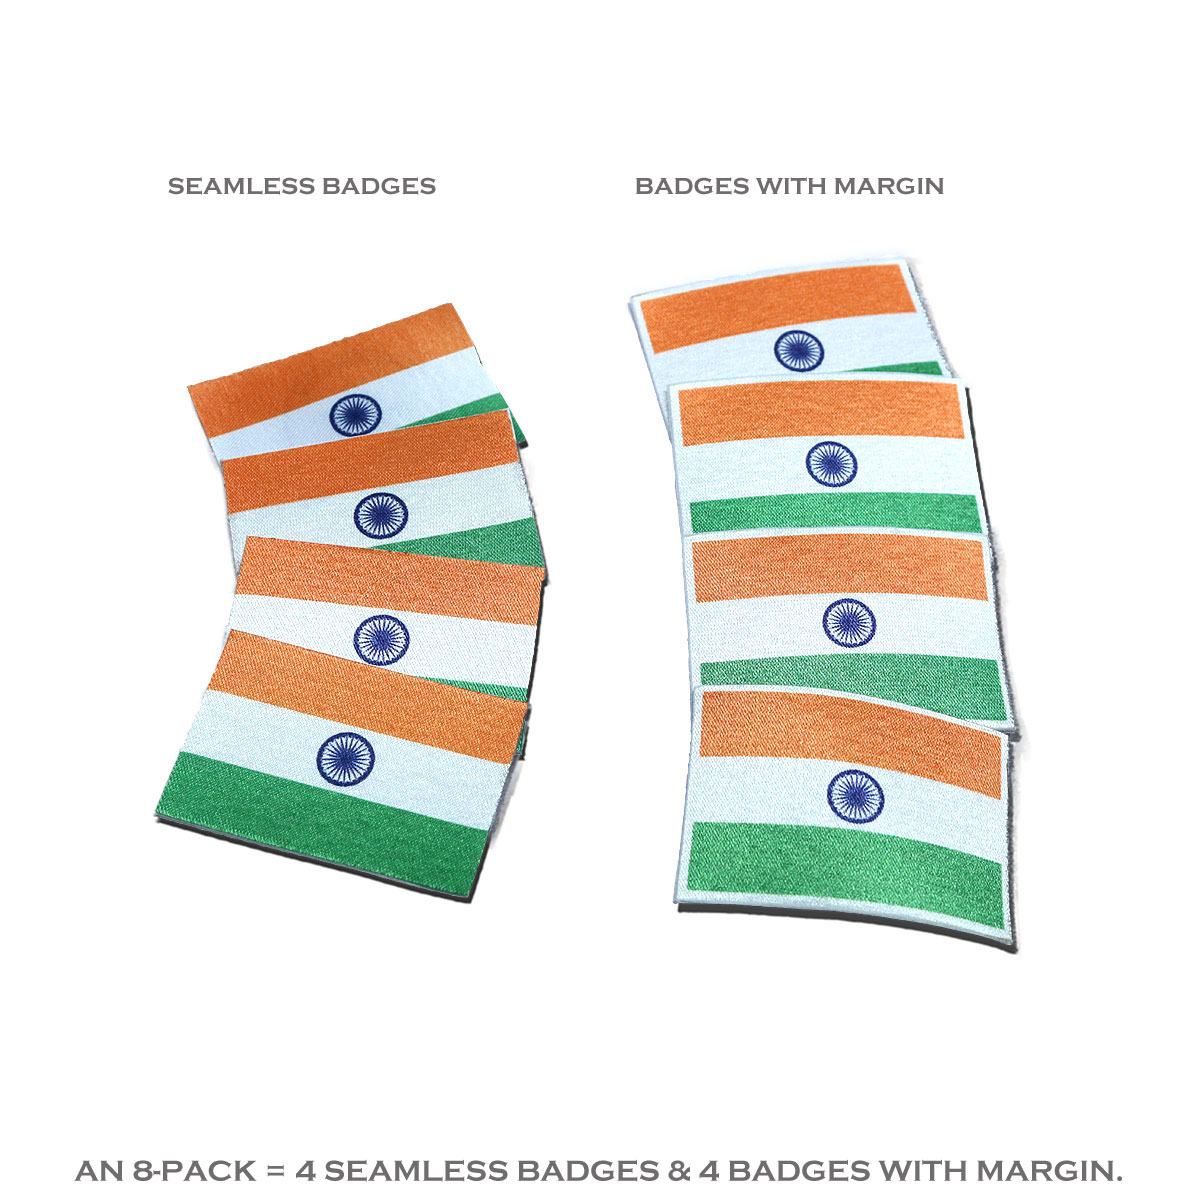 Indian Miniature Flag High Quality Badges for display on Caps, T-shirts, Shirts or Other Clothing Apparels (Pack of 8)